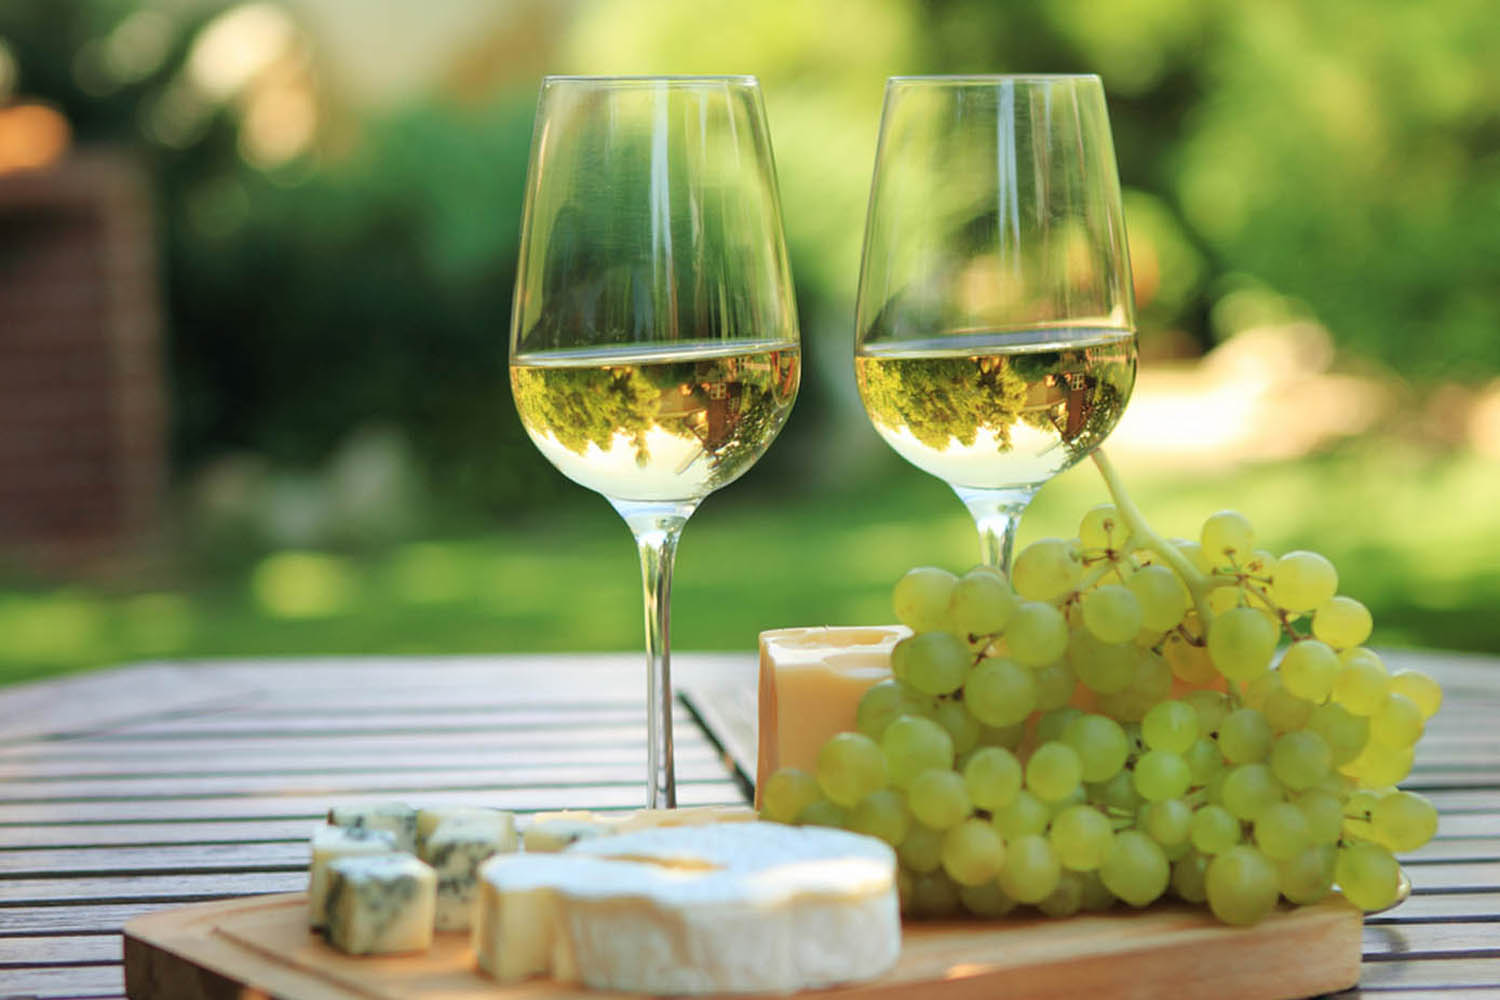 Winery double offer